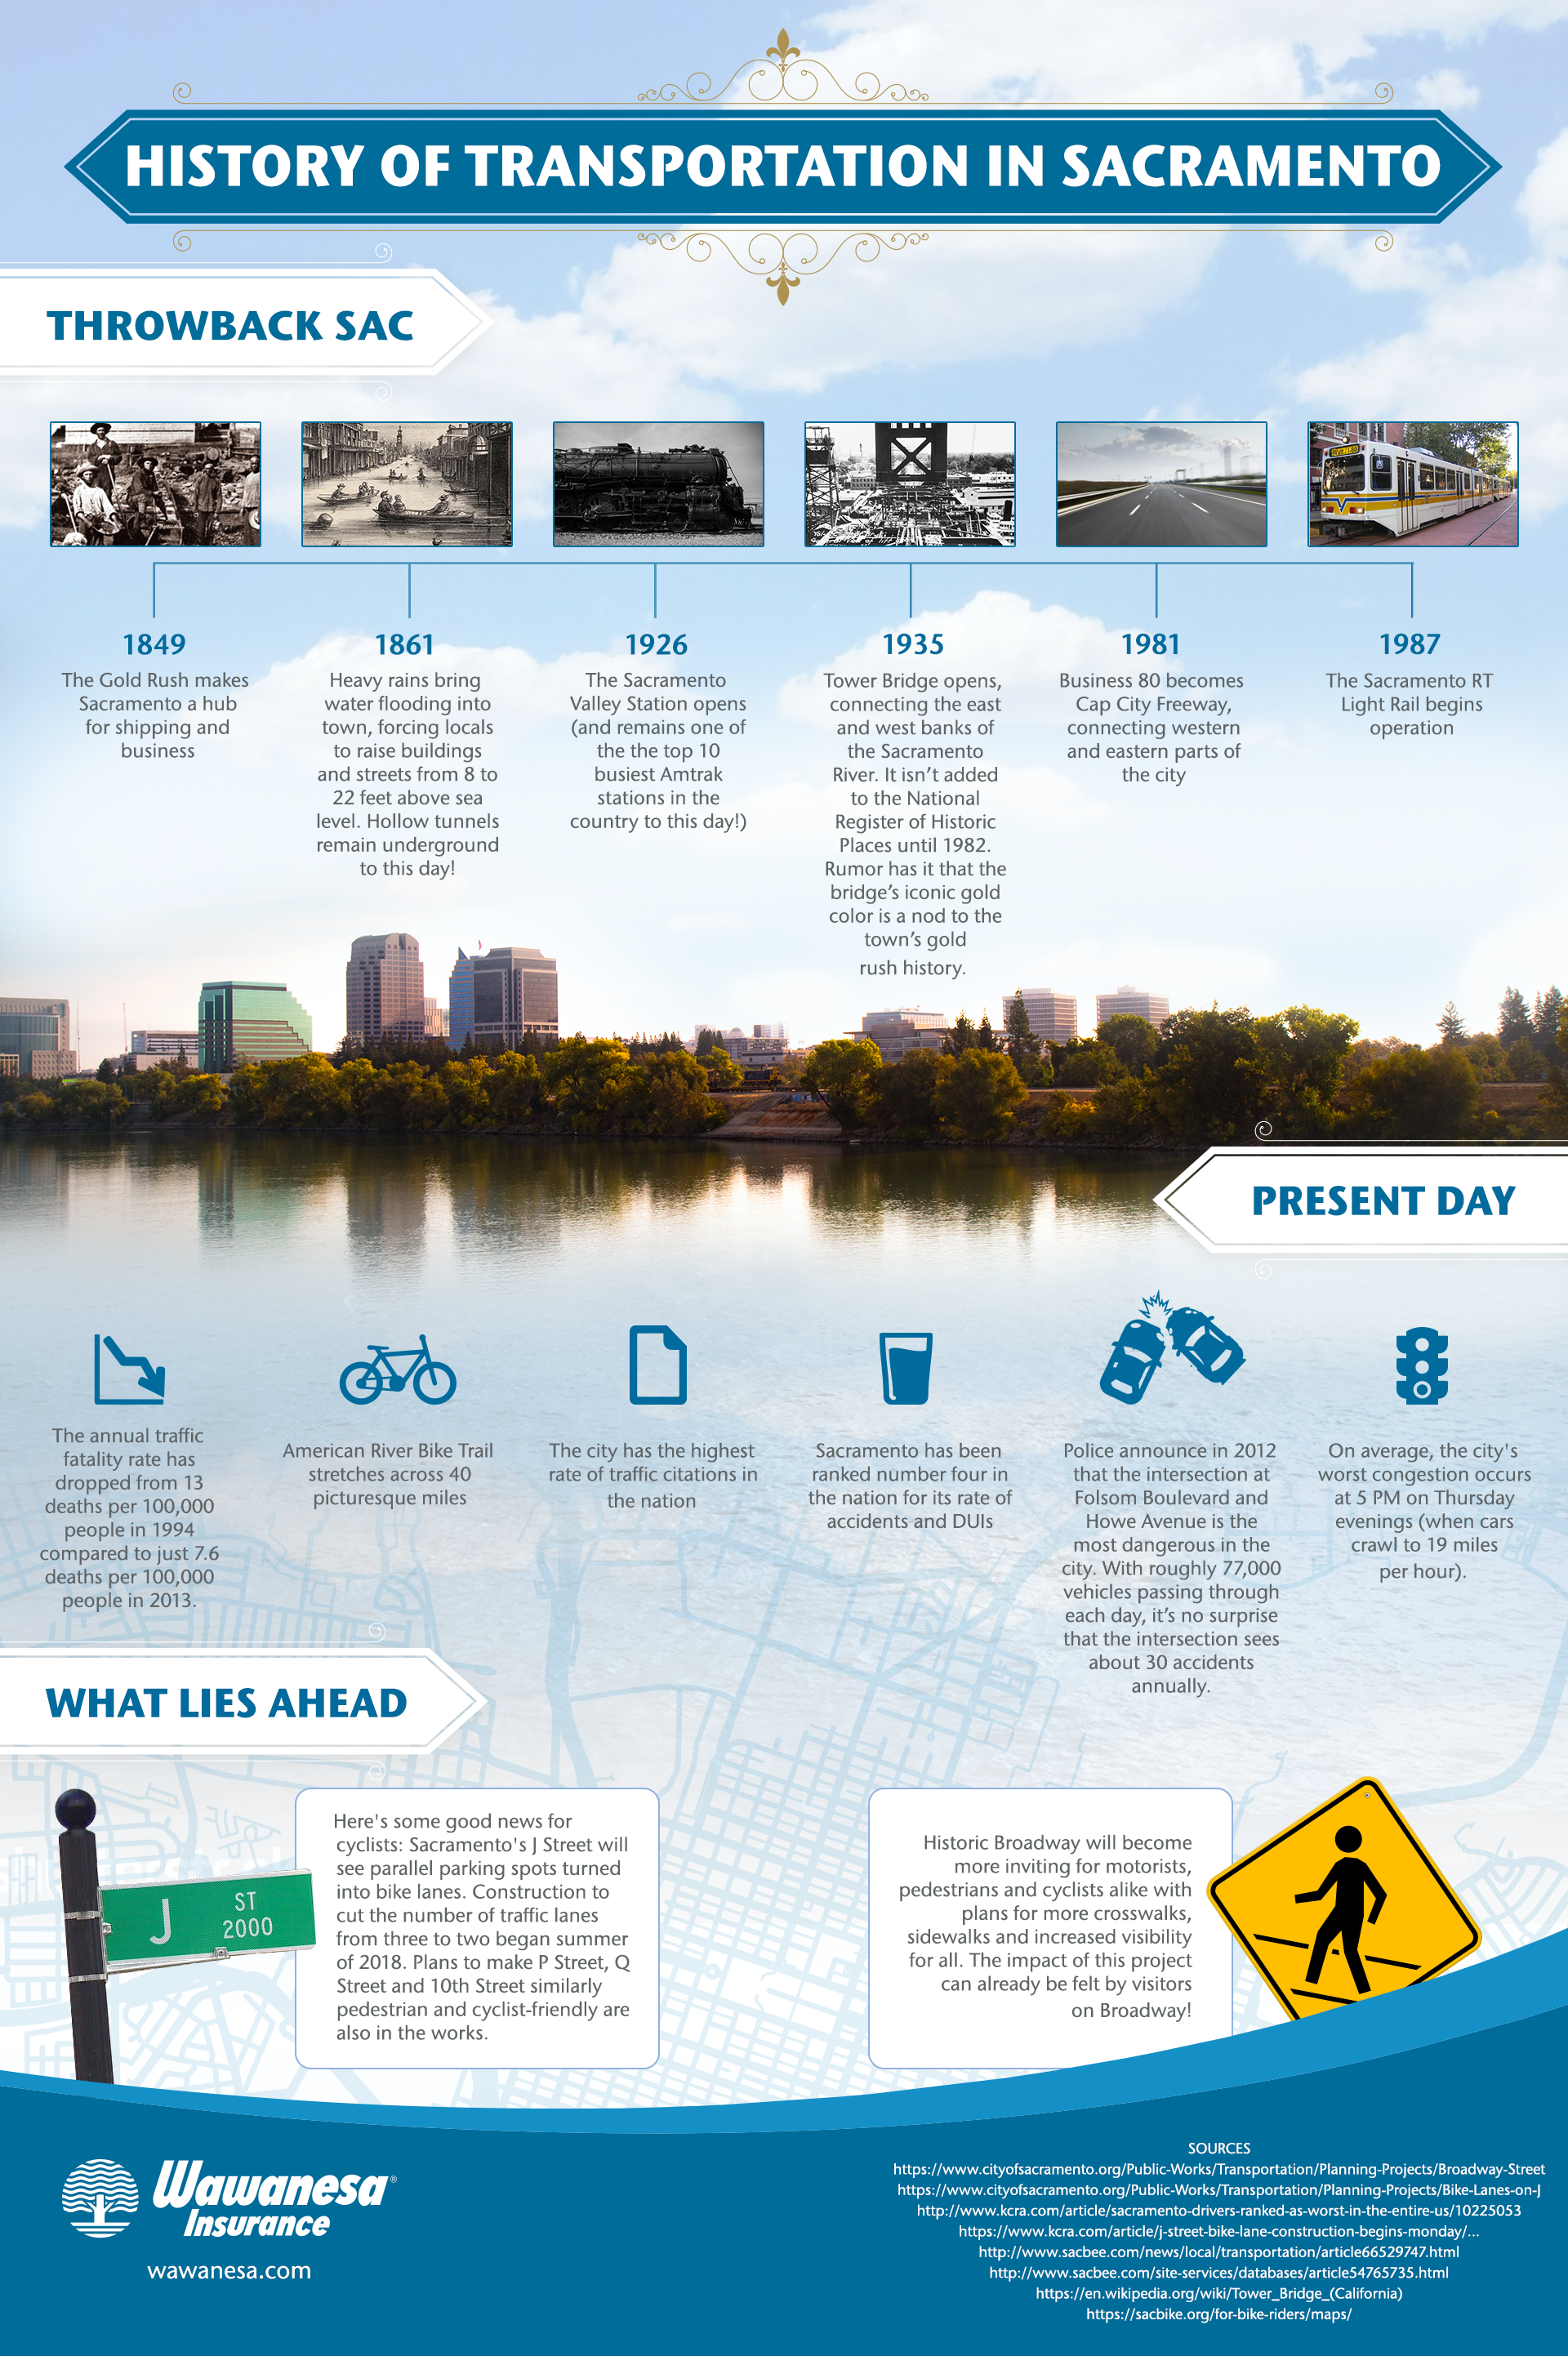 Learn about Sacramento's transportation history with this infographic!